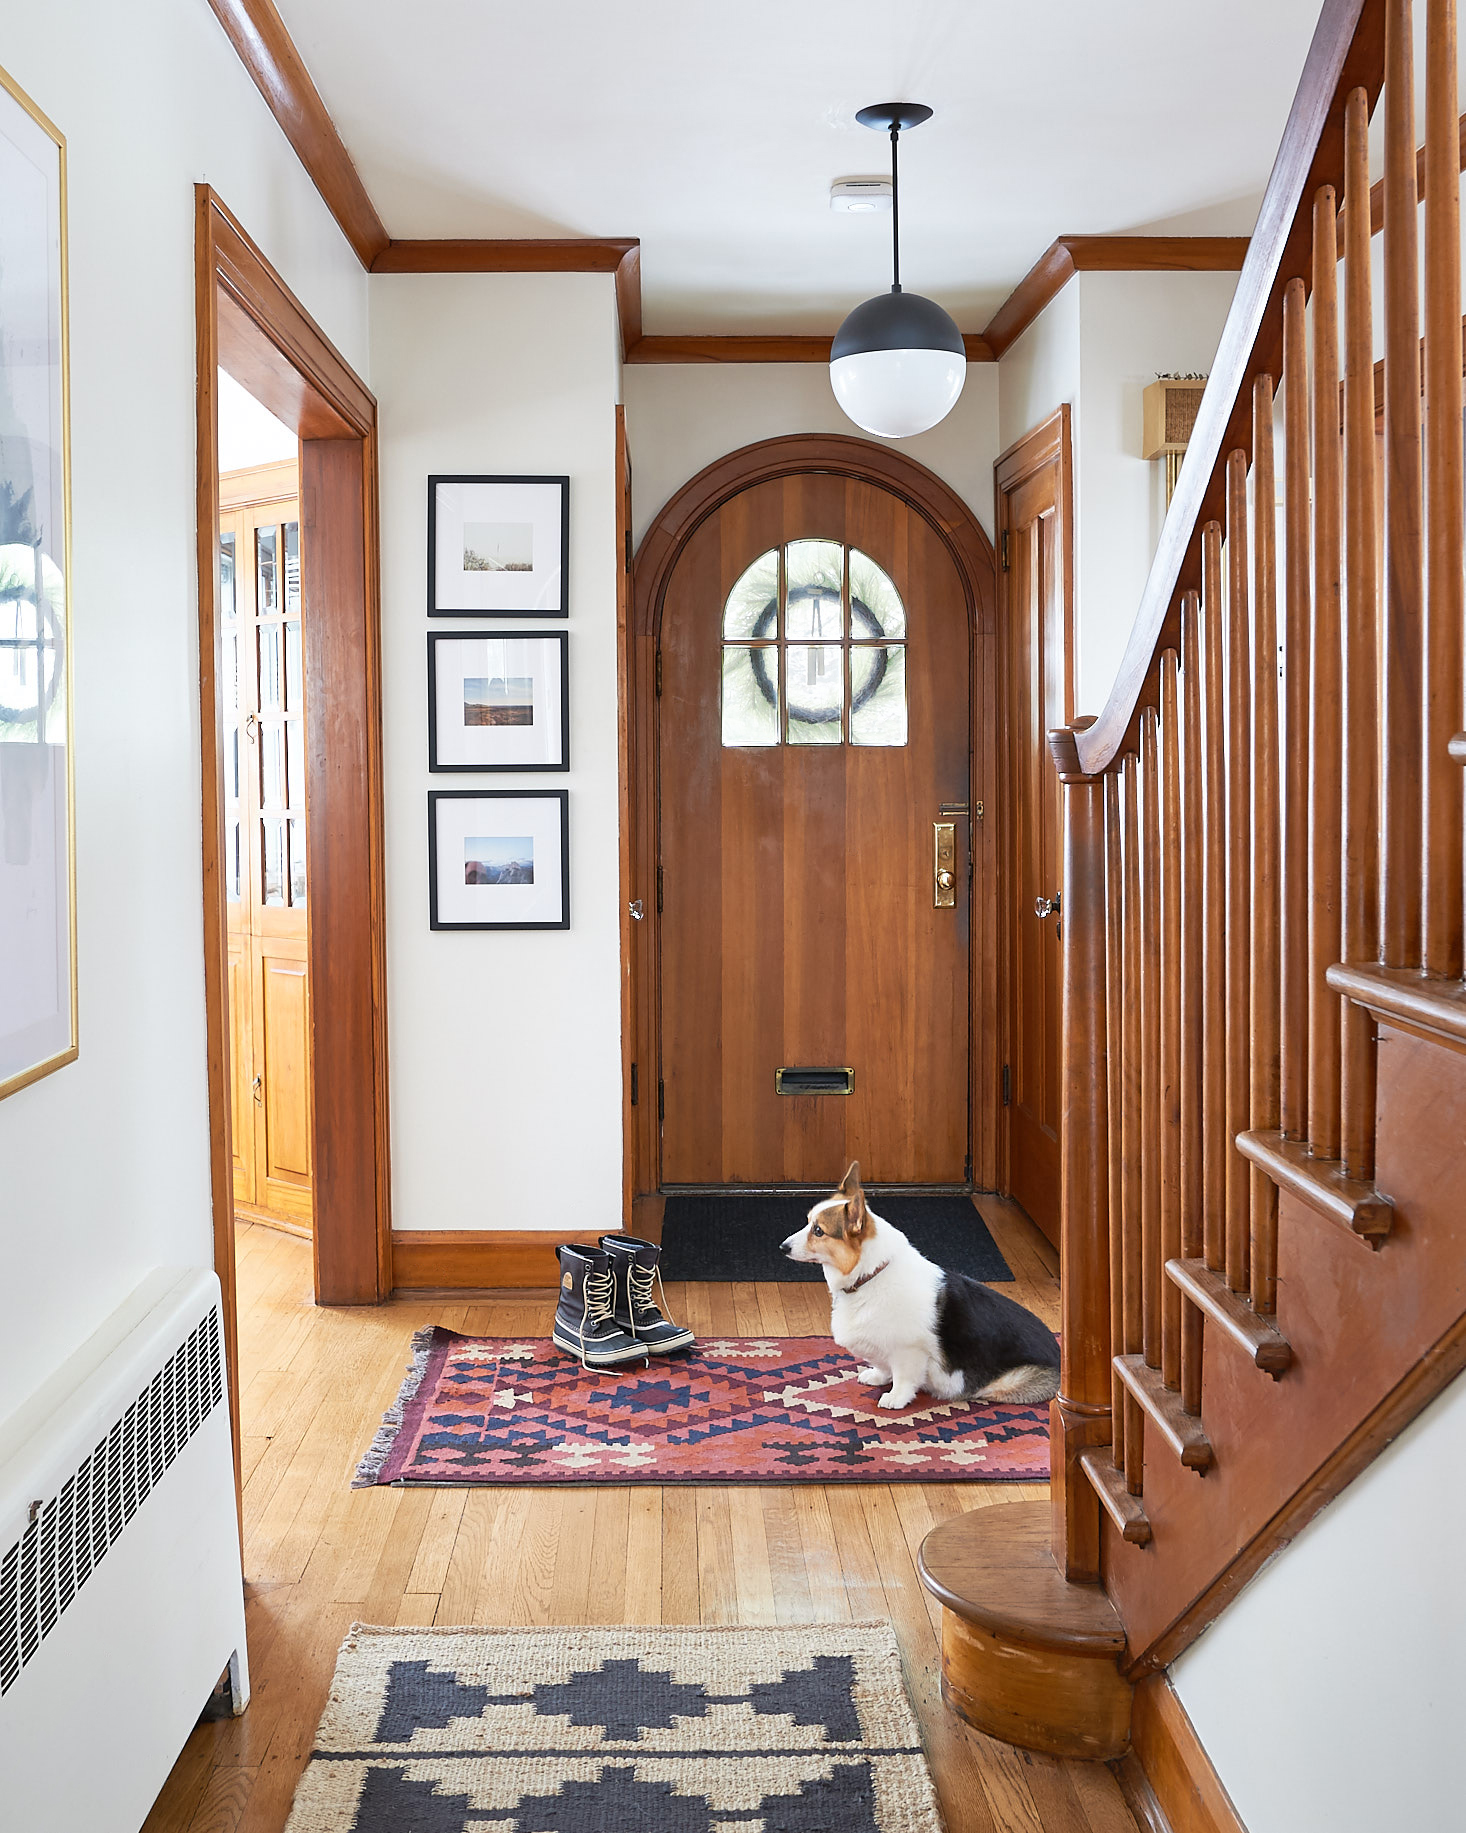 Round front door with stacked art and a wooden staircase